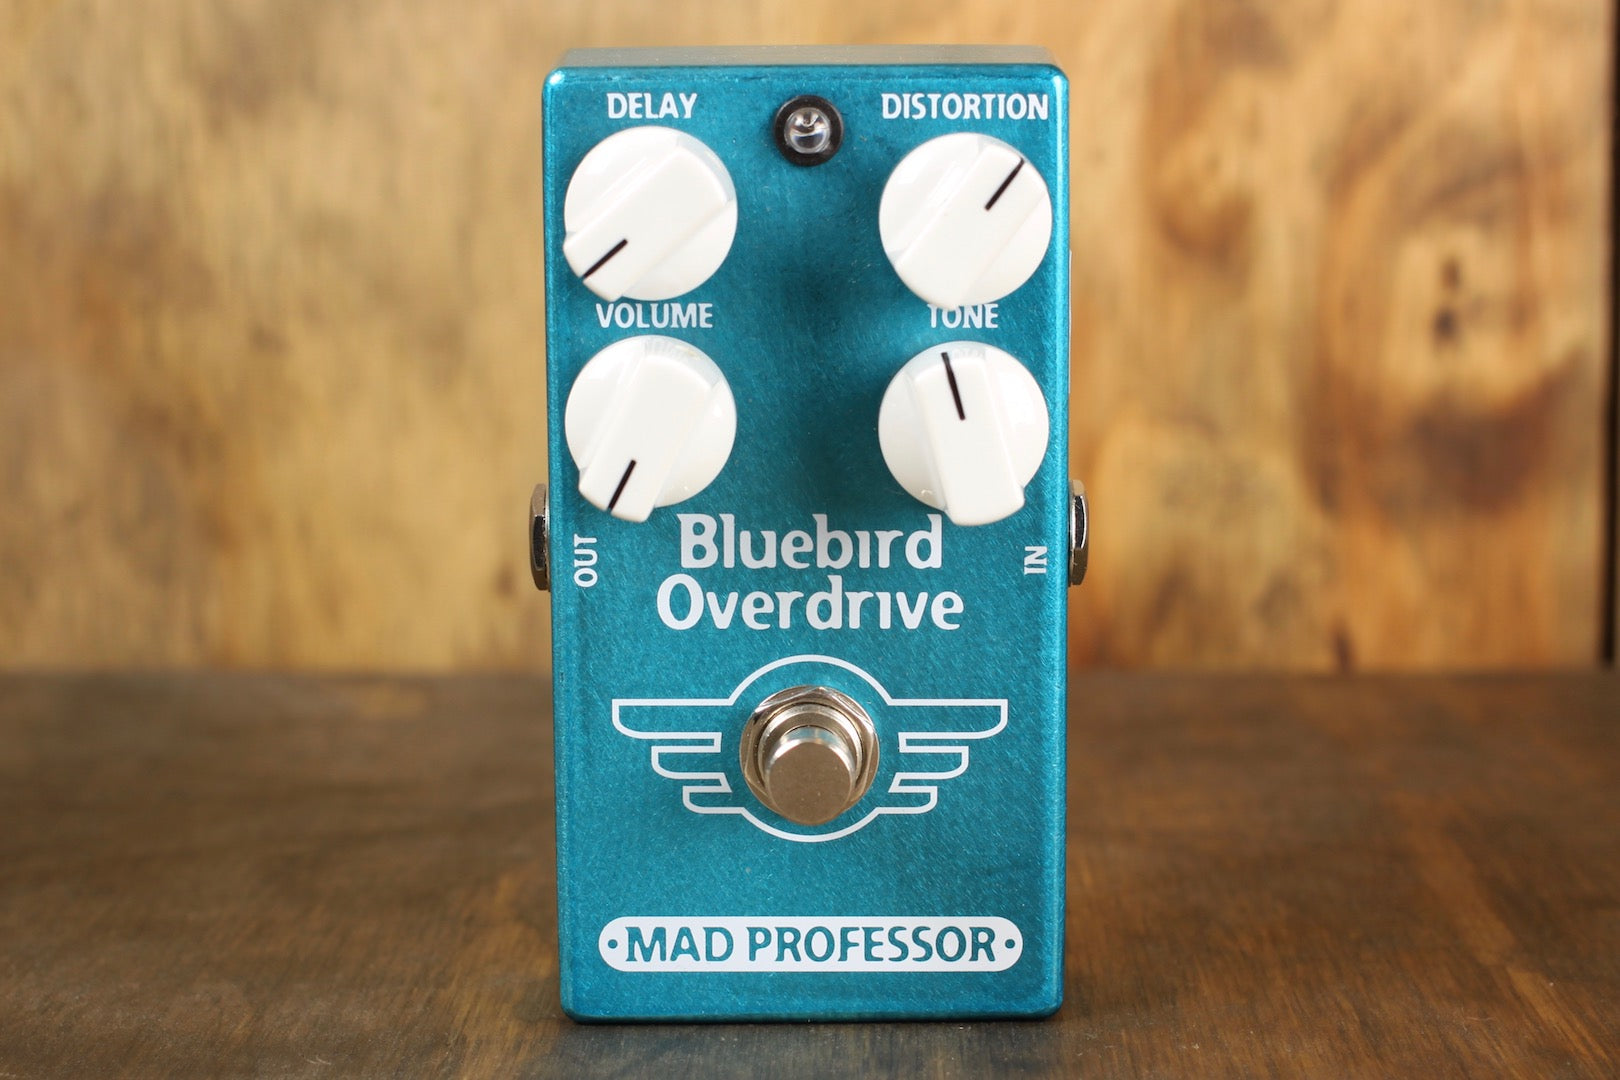 Mad Professor Bluebird Overdrive